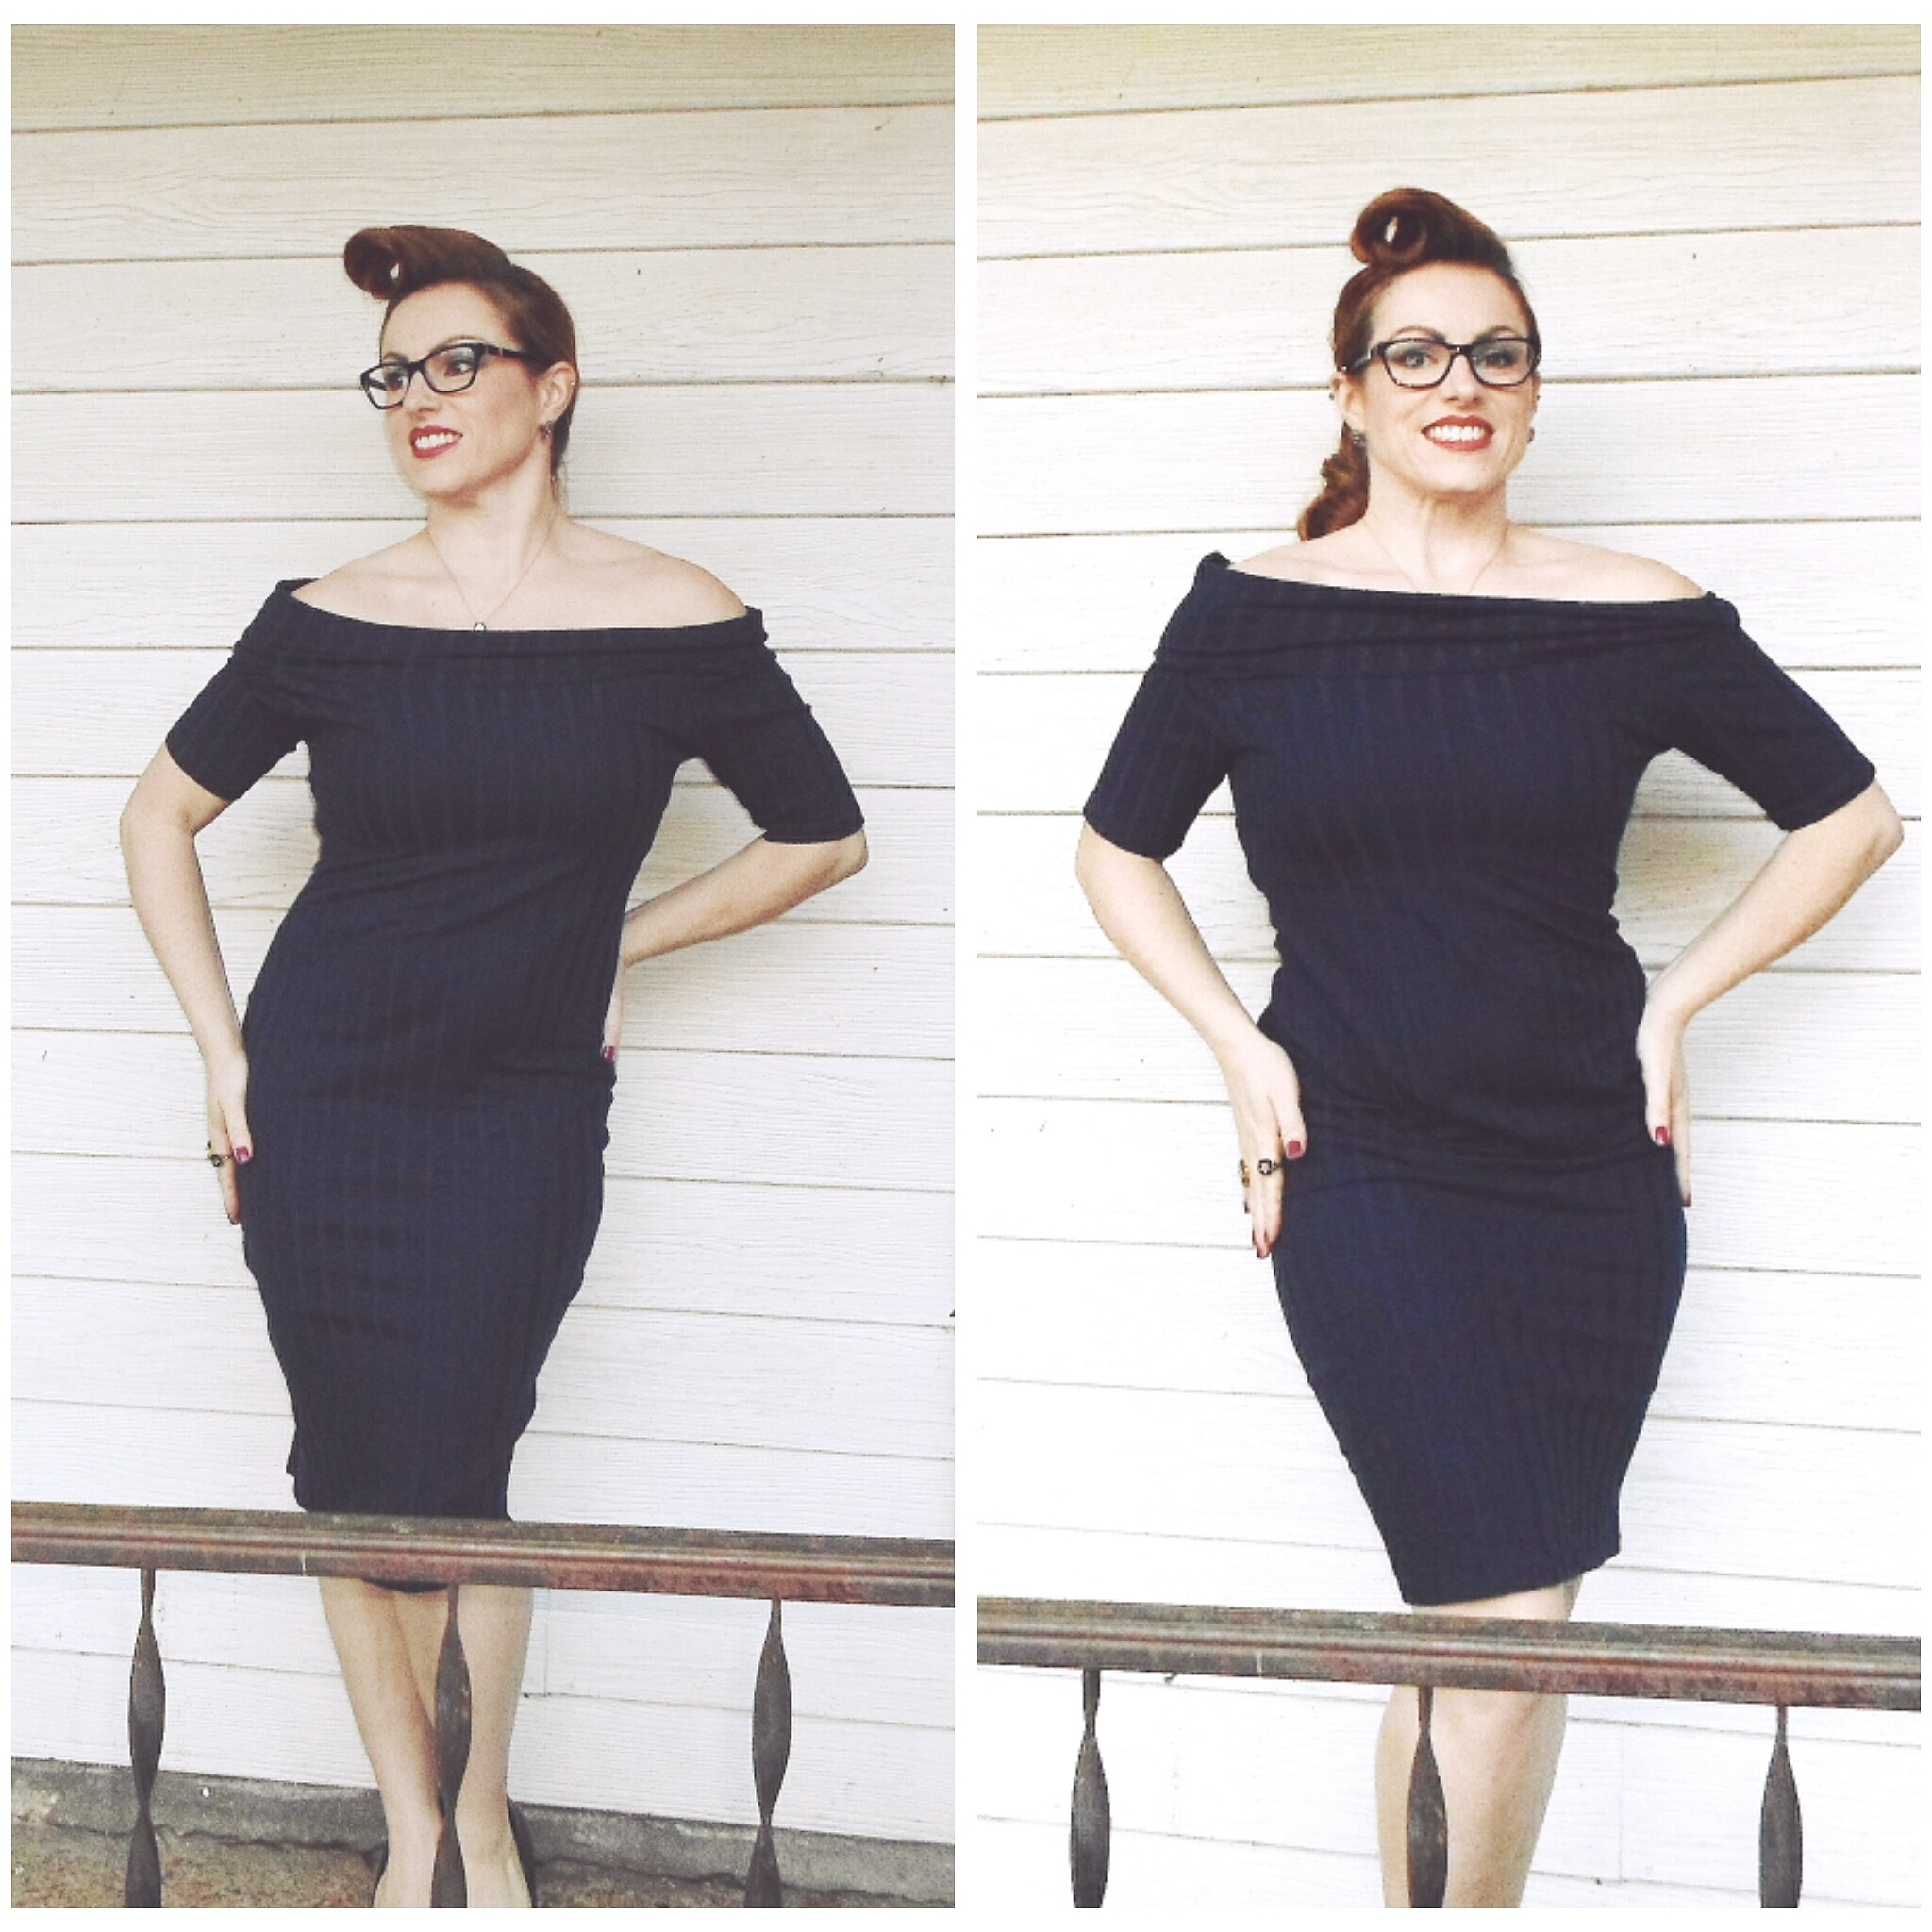 b52d46da7a9 Wiggle out of the Blues Dress · Dialed In Boutique · Online Store ...